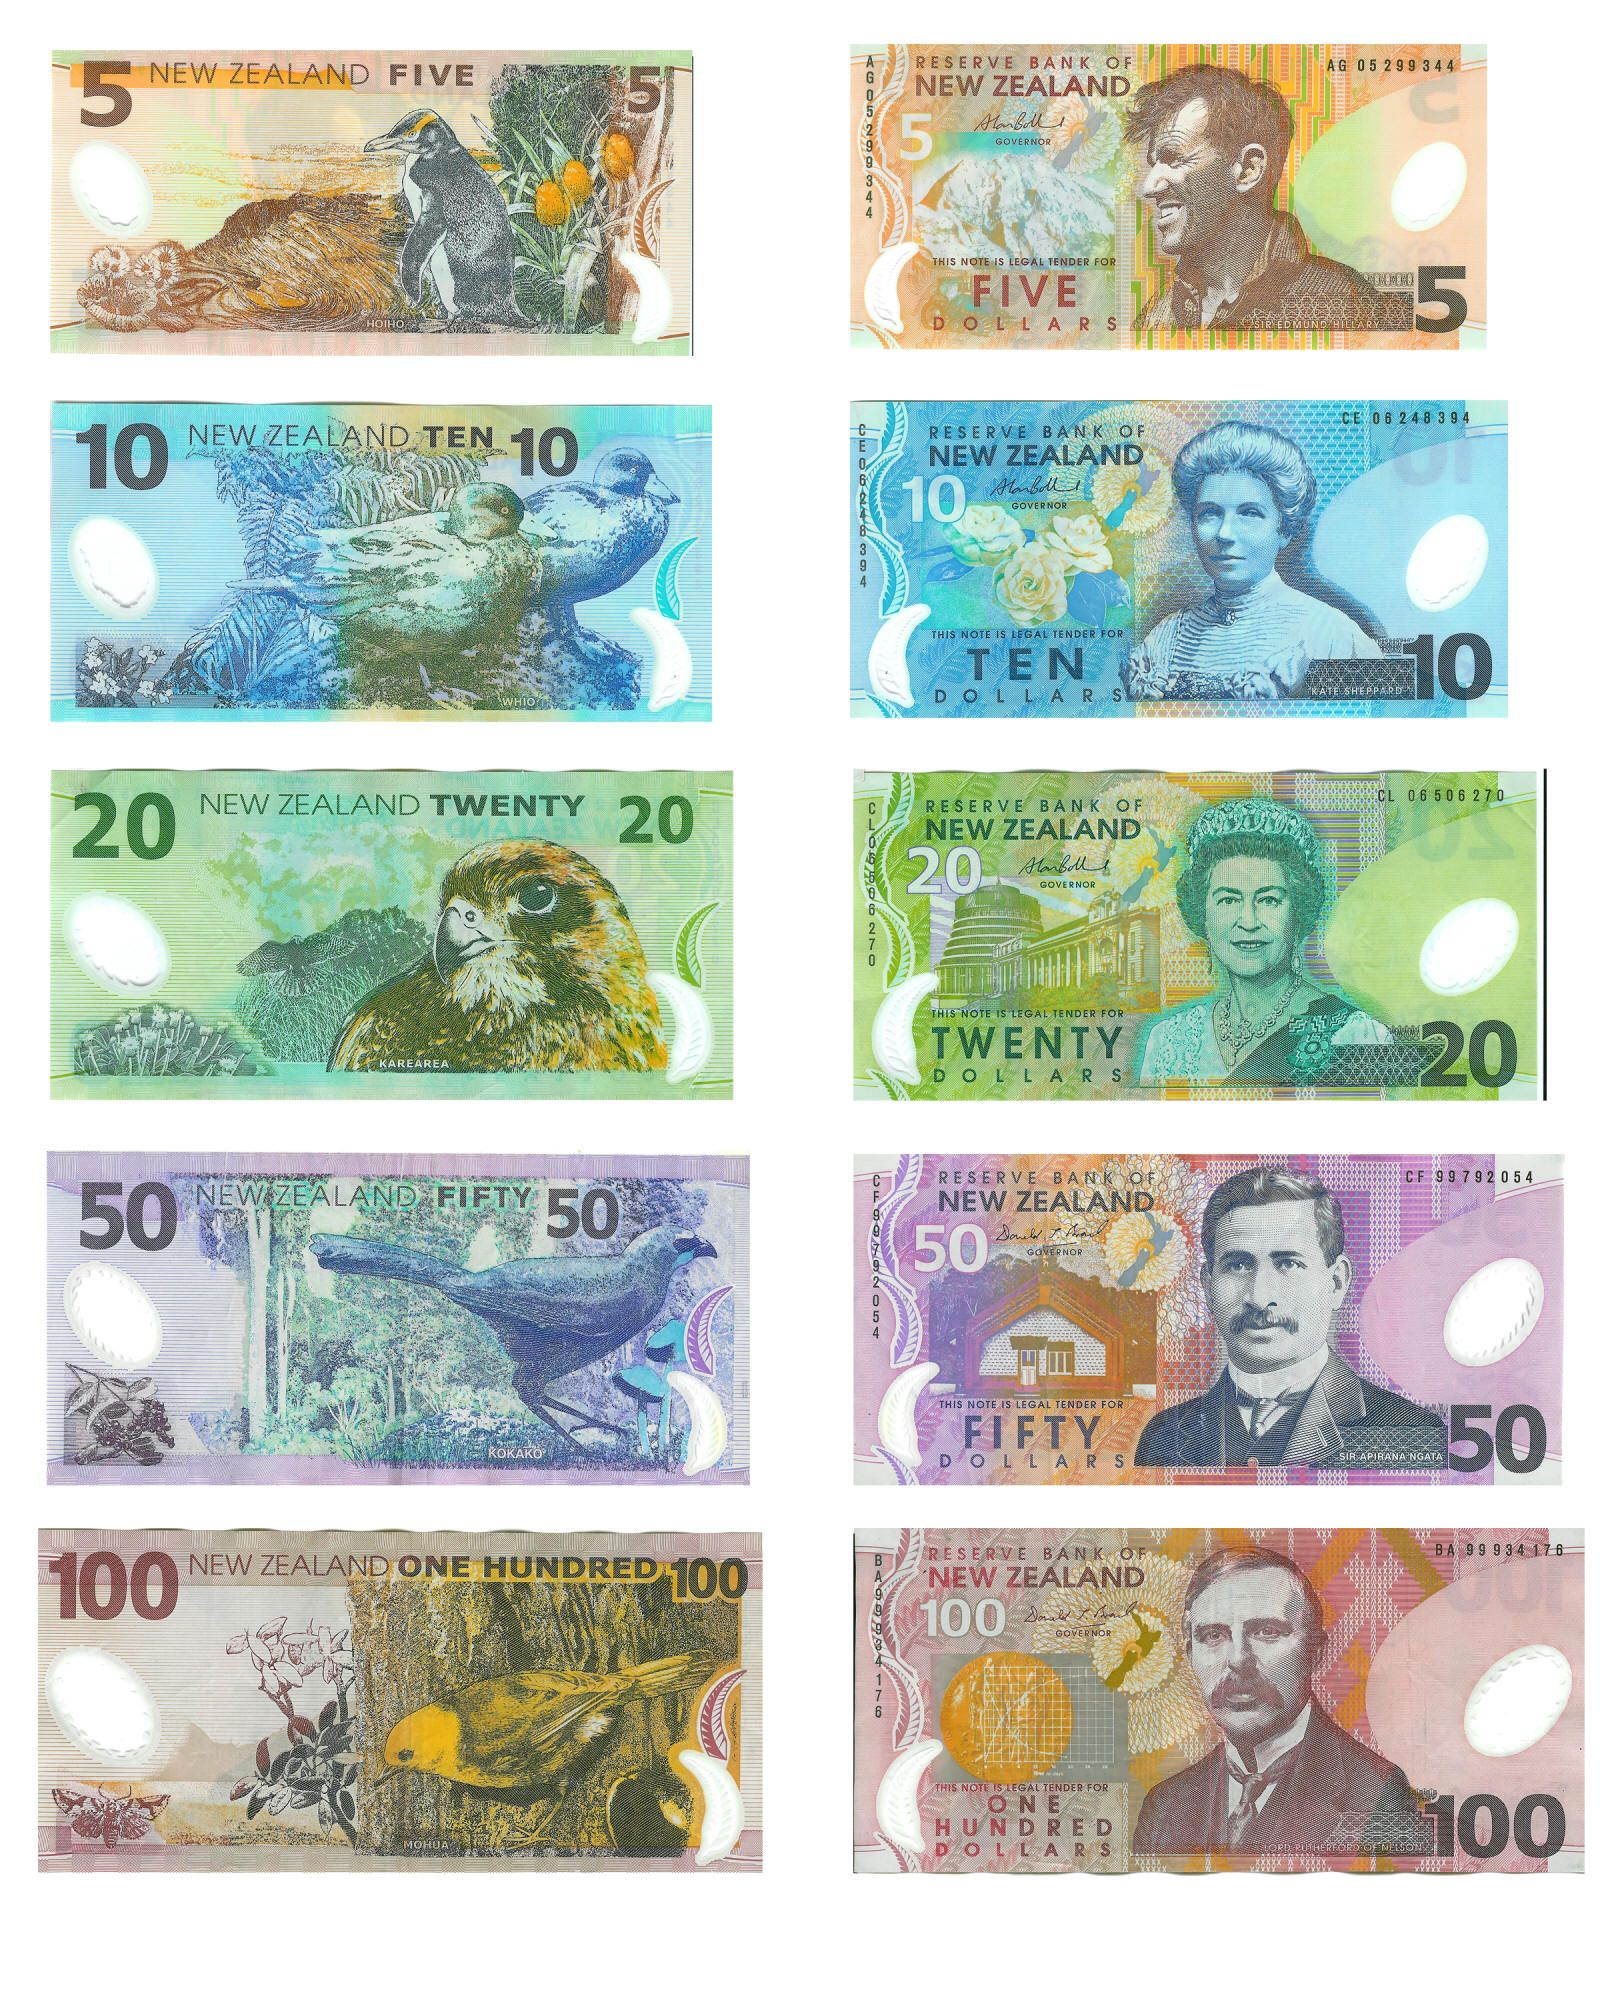 Nz Currency Top To Bottom Sir Edmund Hillary First Man Climb Mt Everest 1953 Kate Sheppard Women S Rights Activist 1893 Queen Elizabeth Ii